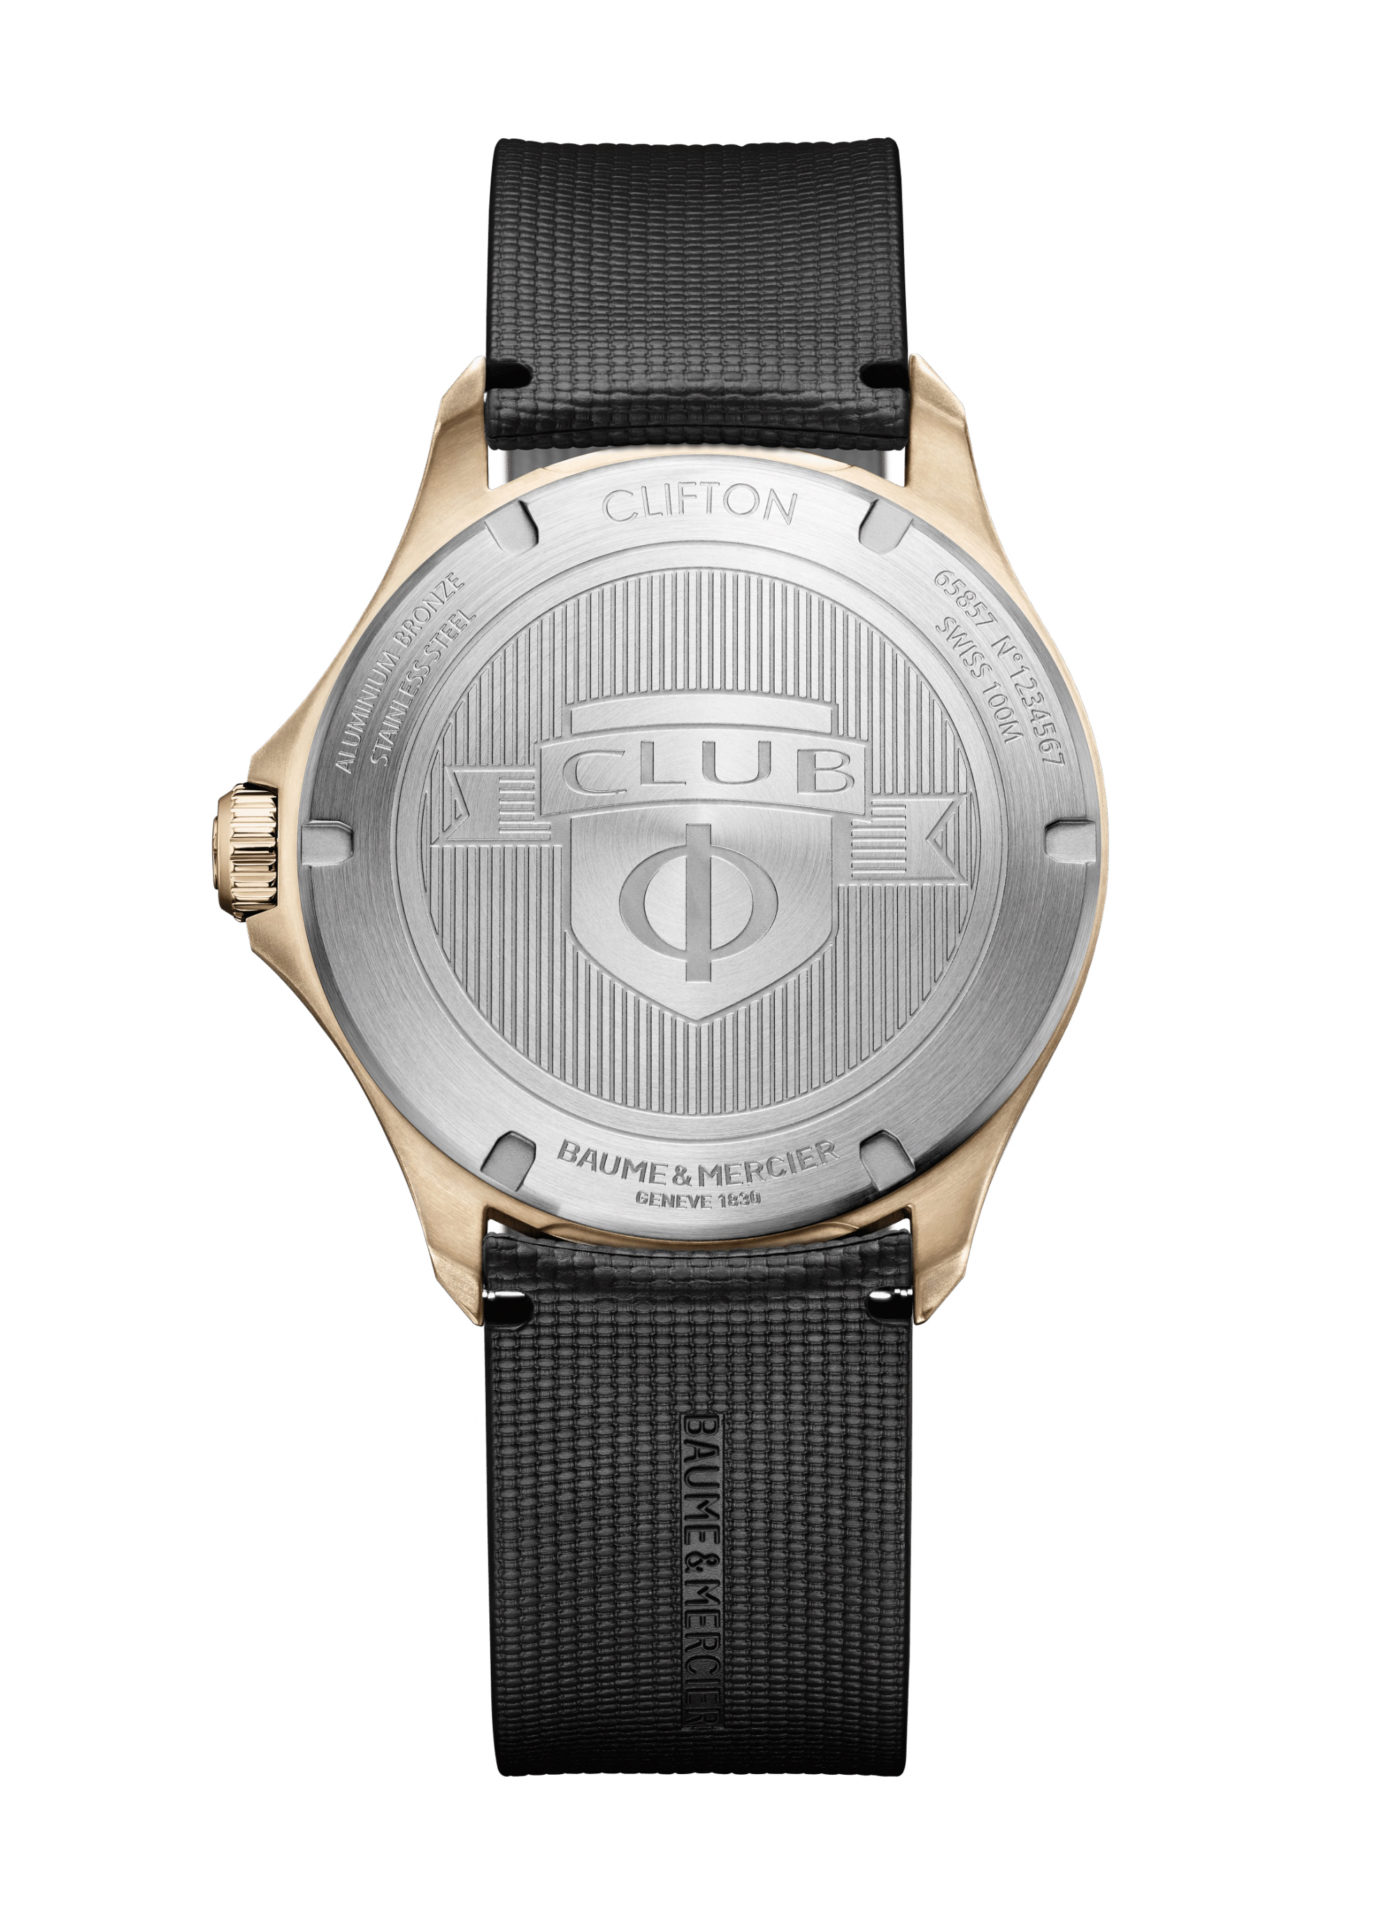 Baume-&-Mercier-Clifton-Club-10501*-Hall-of-Time